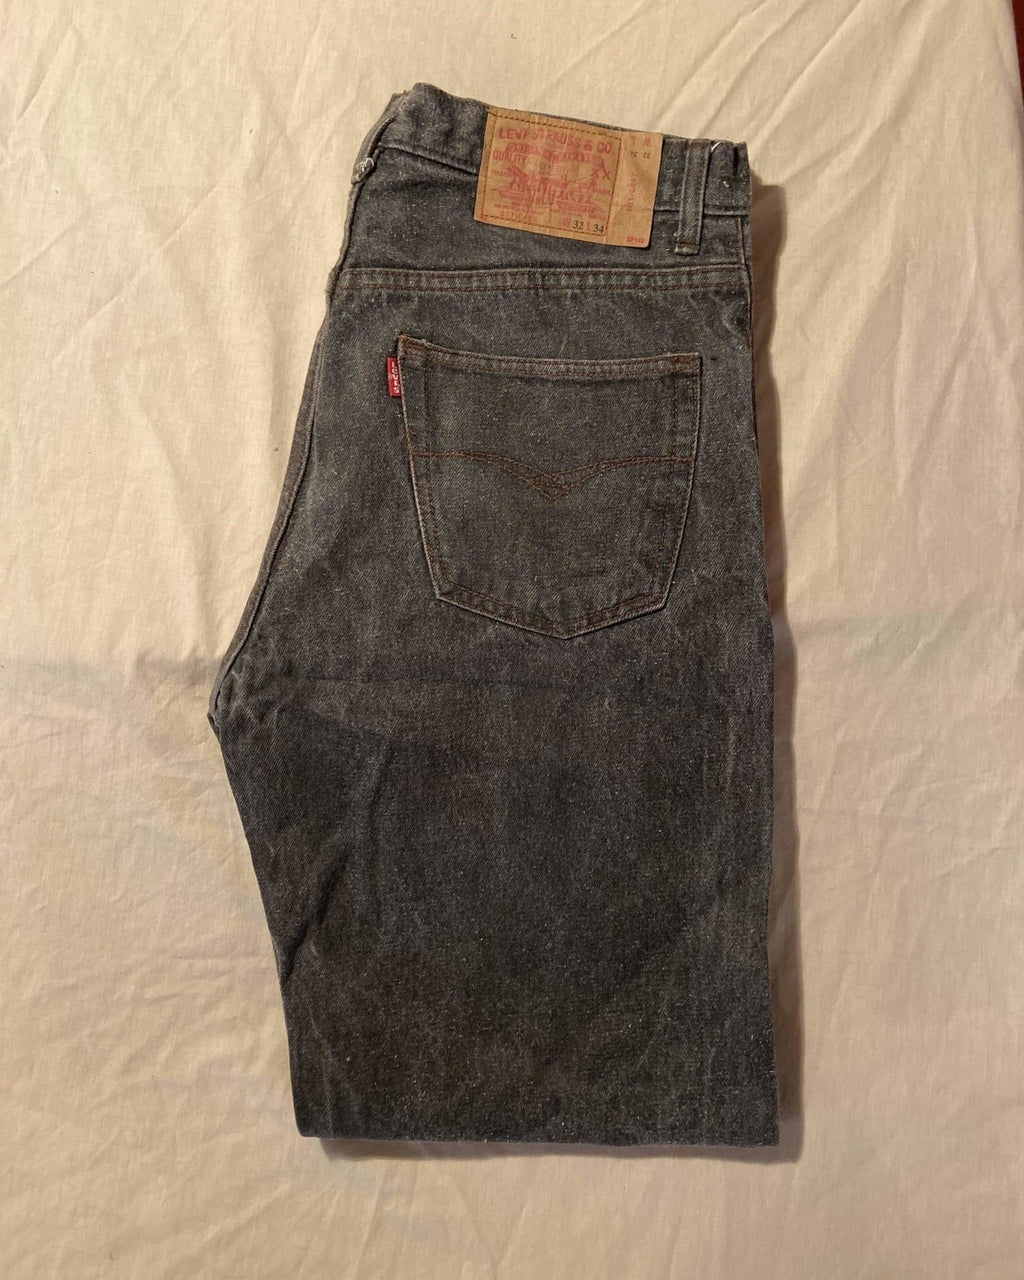 Grade A Levi's Original 501 Regular Fit Jeans W32 L34 (DF5) - Discounted Deals UK